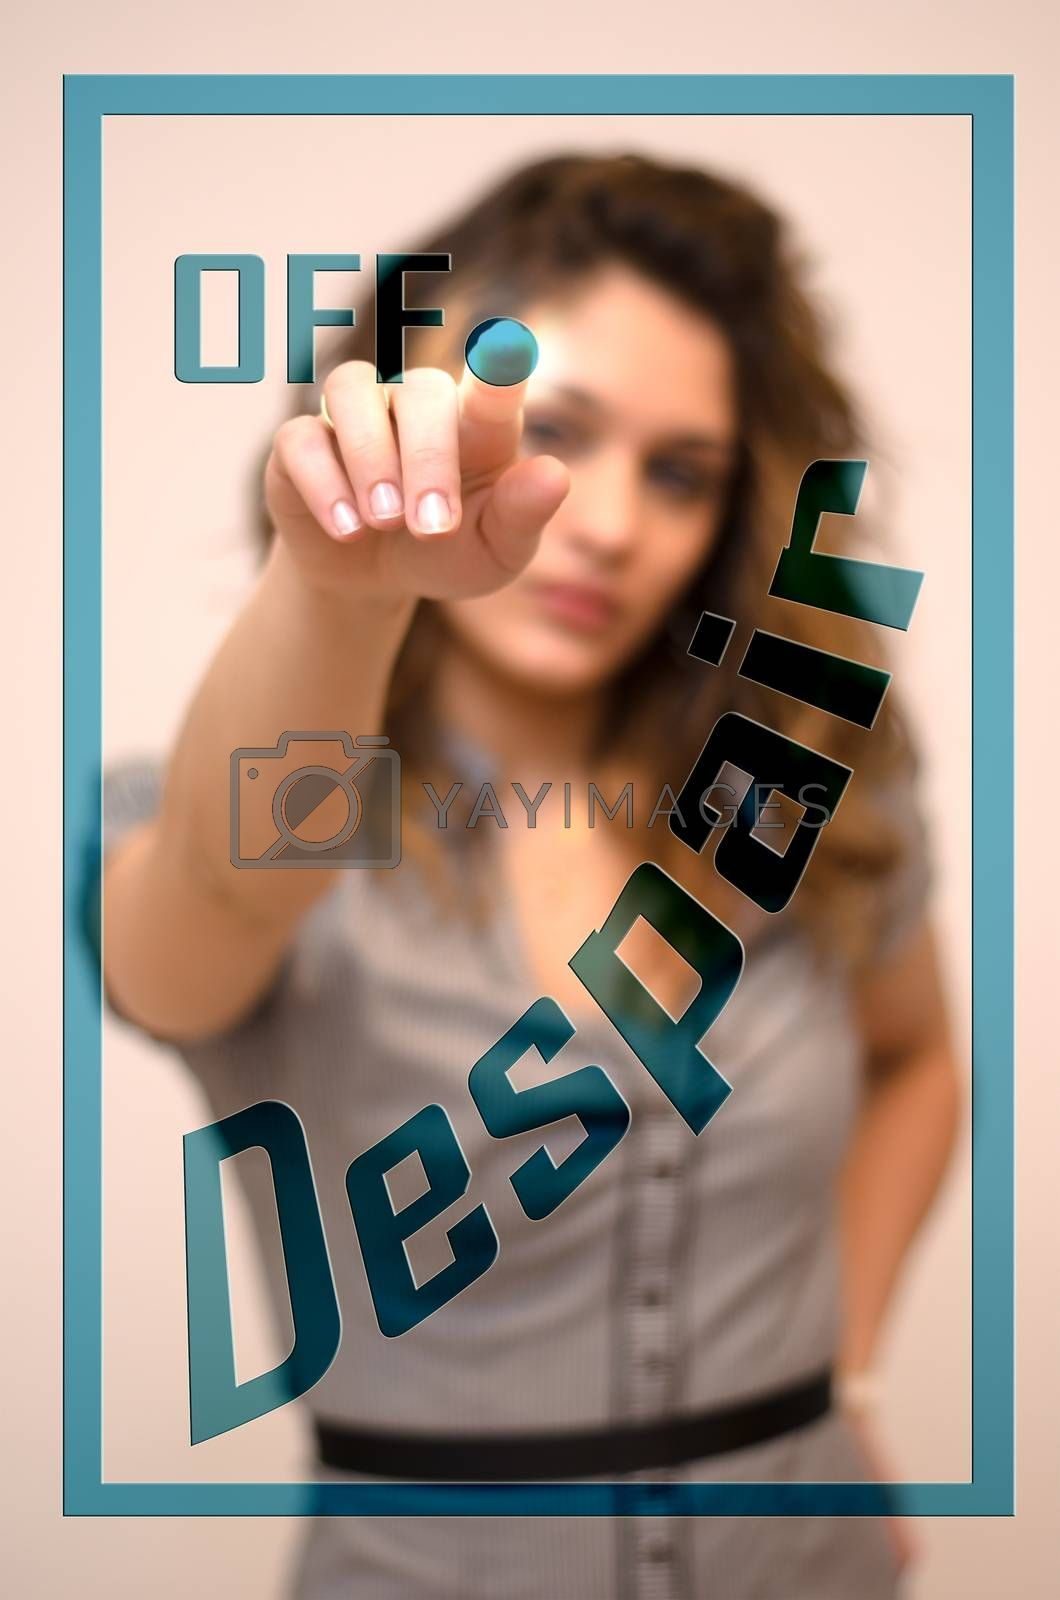 Royalty free image of woman switching off Despair on digital interace by vepar5